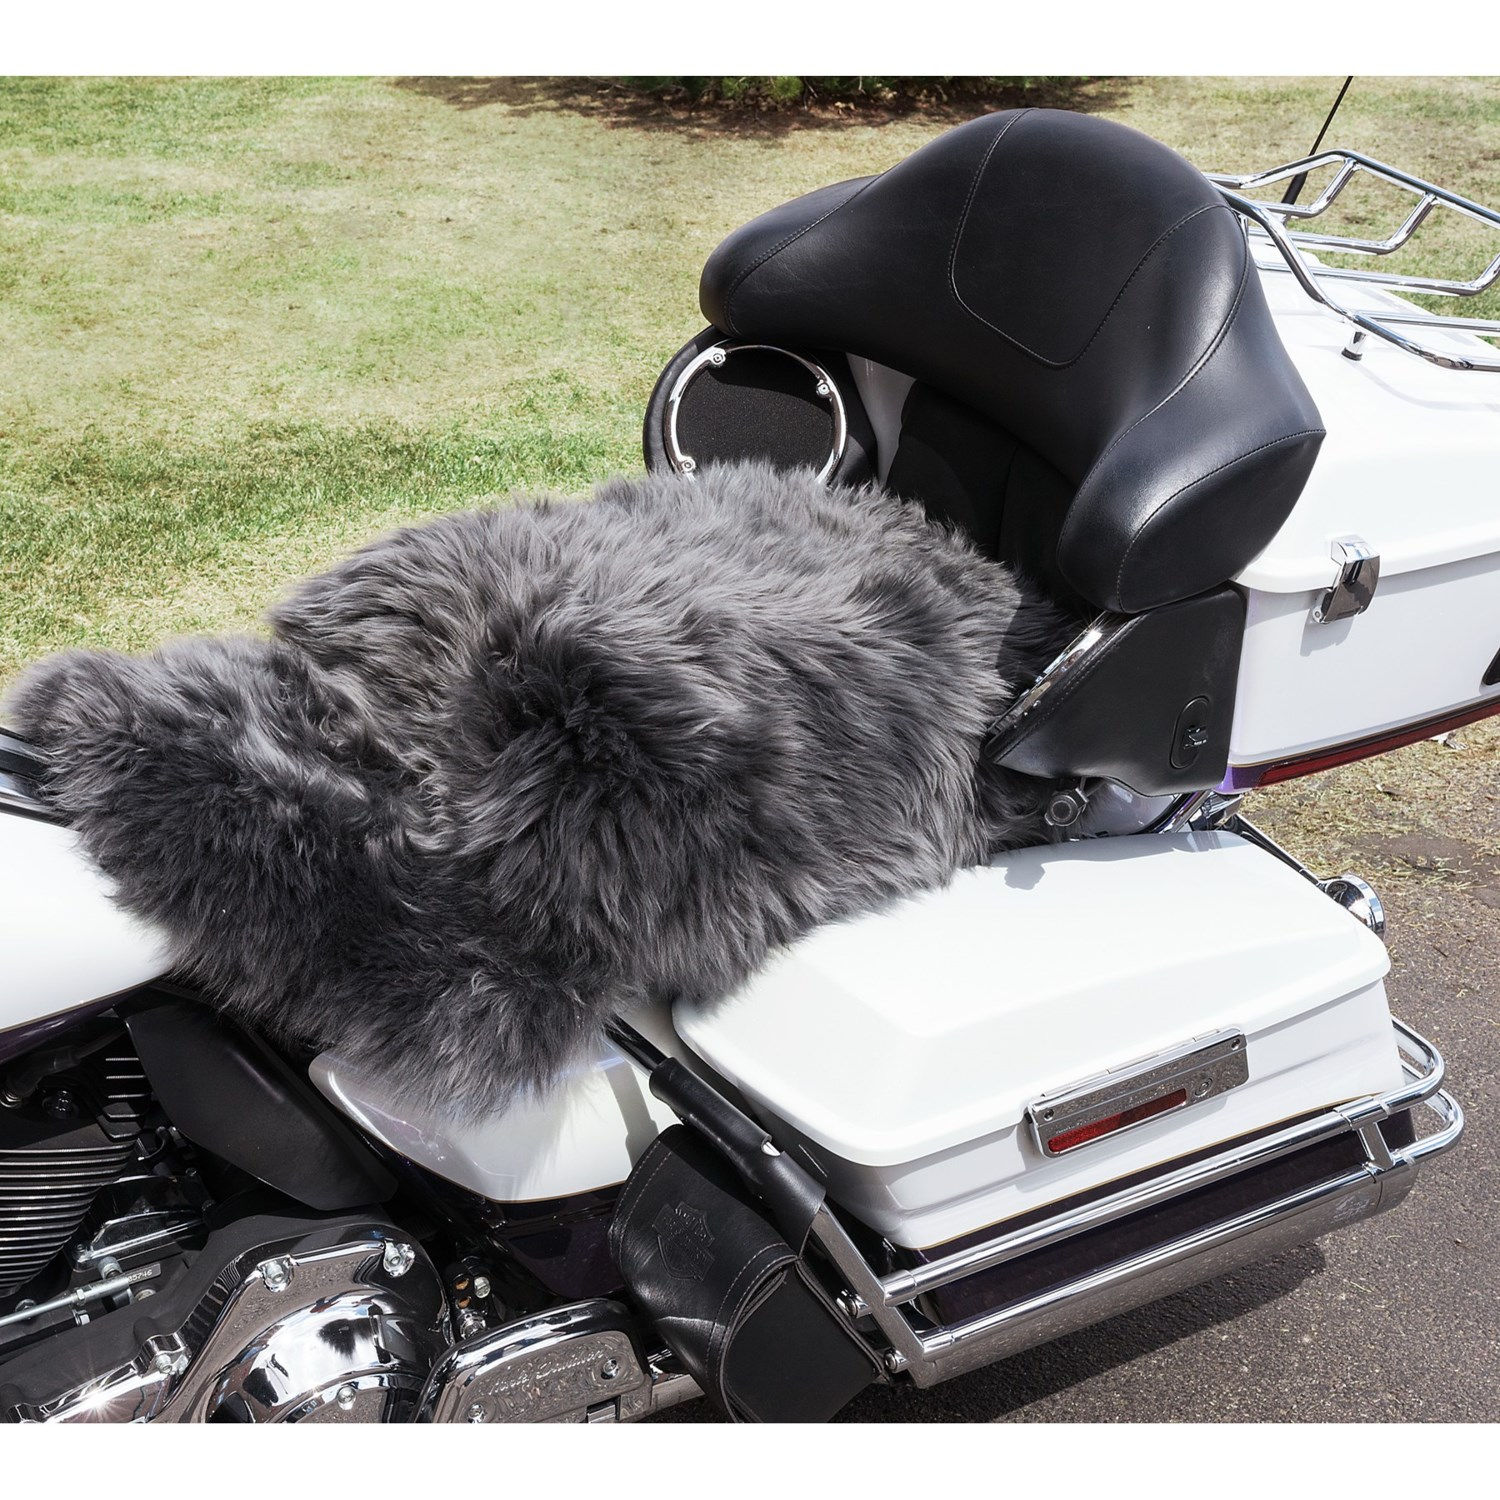 Auskin Longwool Sheepskin Motorcycle Seat Cover Save 45